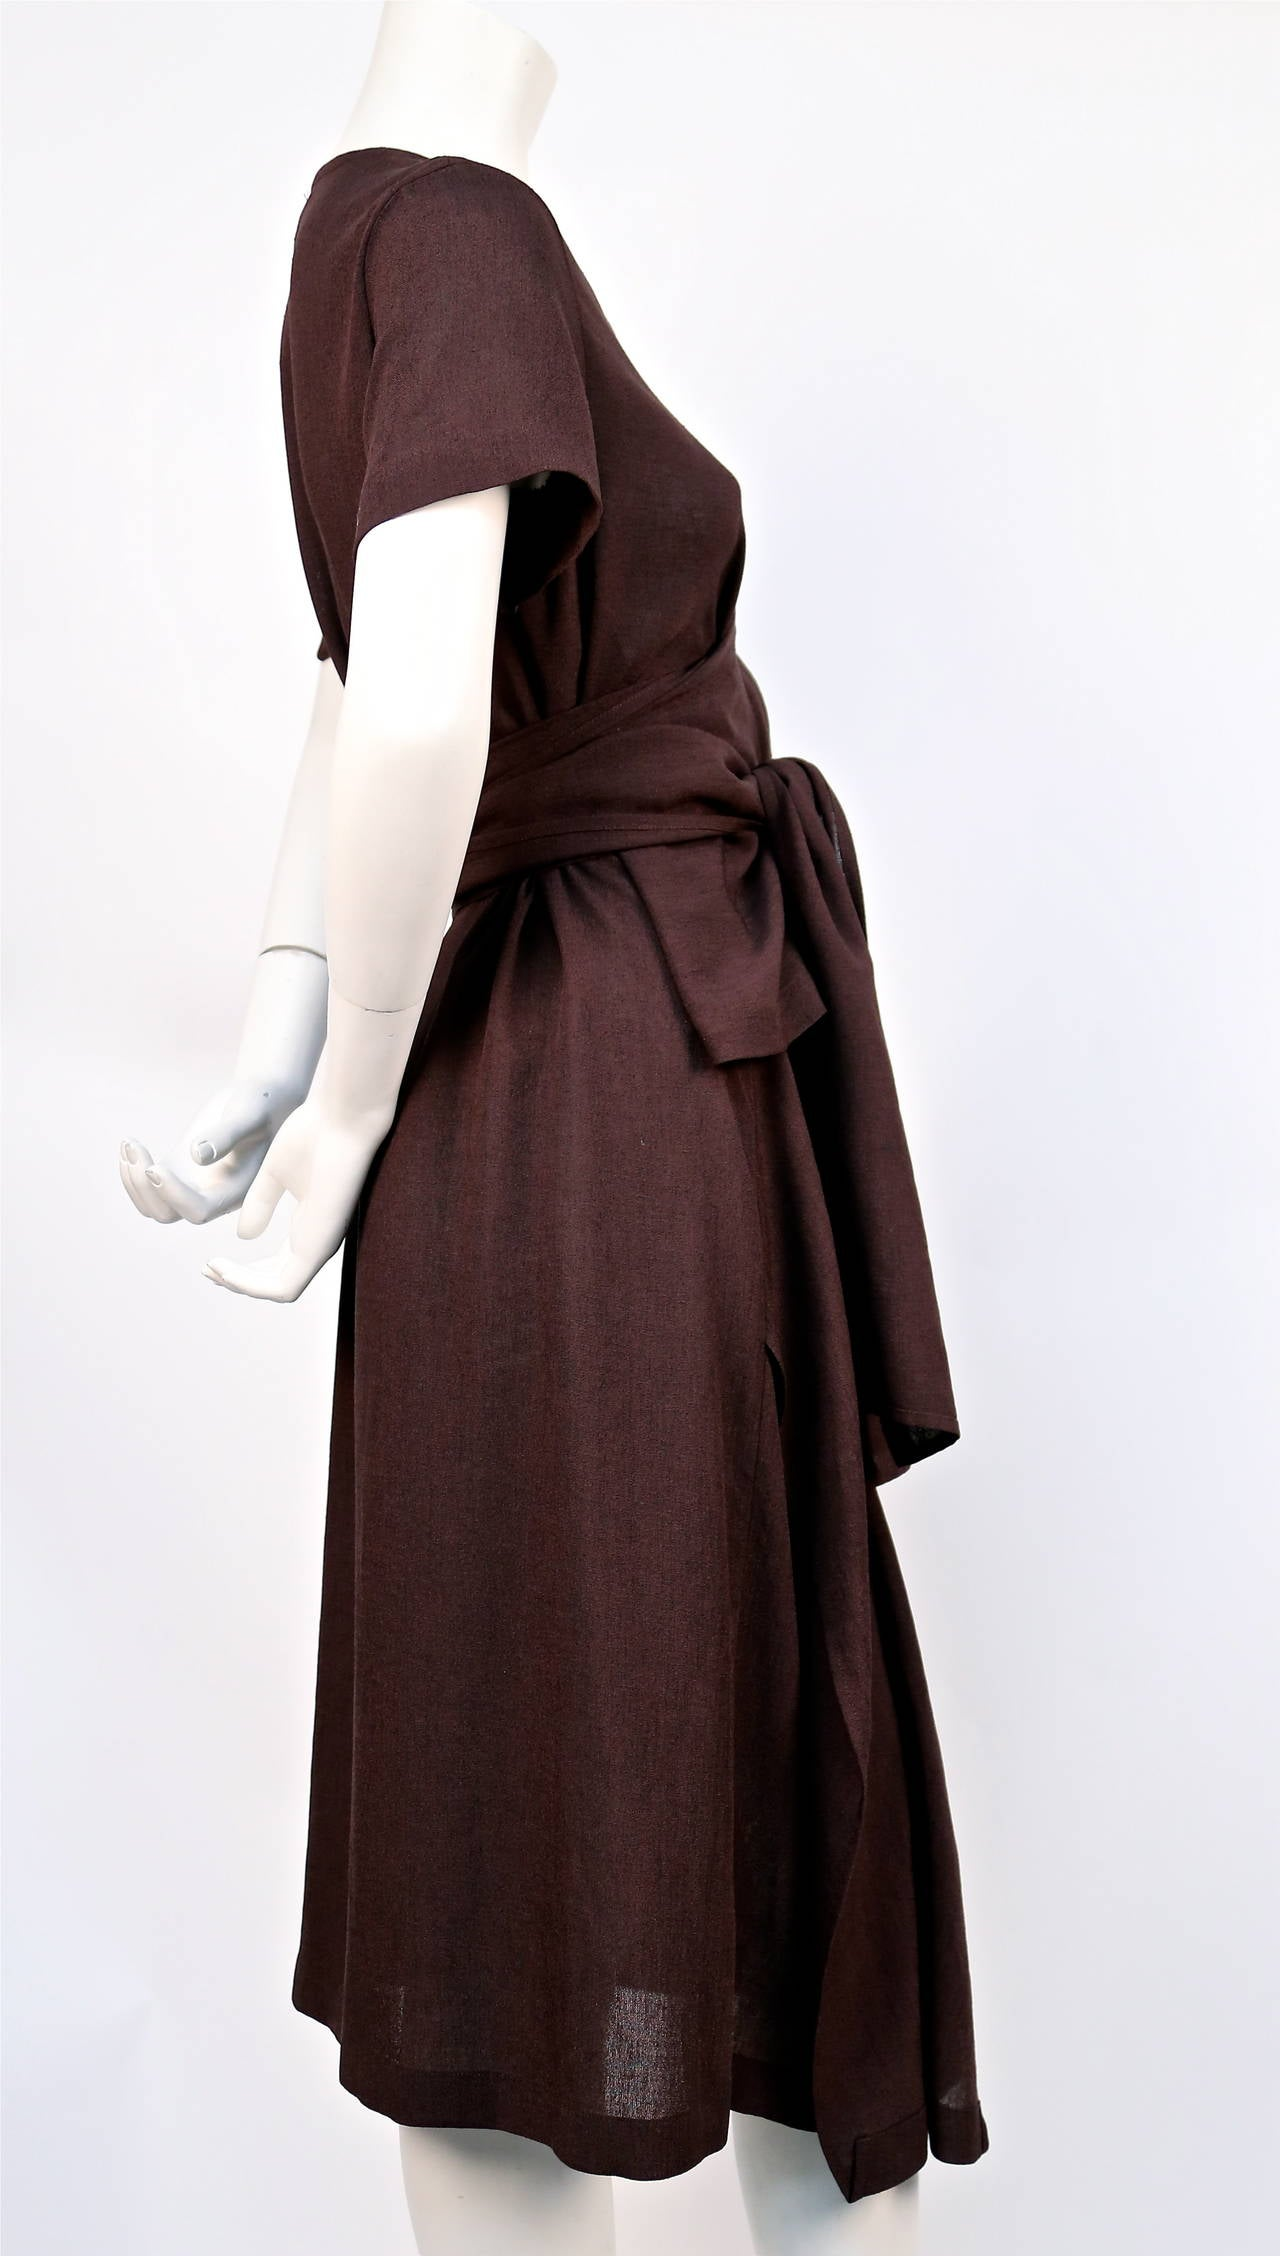 1997 COMME DES GARCONS brown draped dress with wrap waist 2